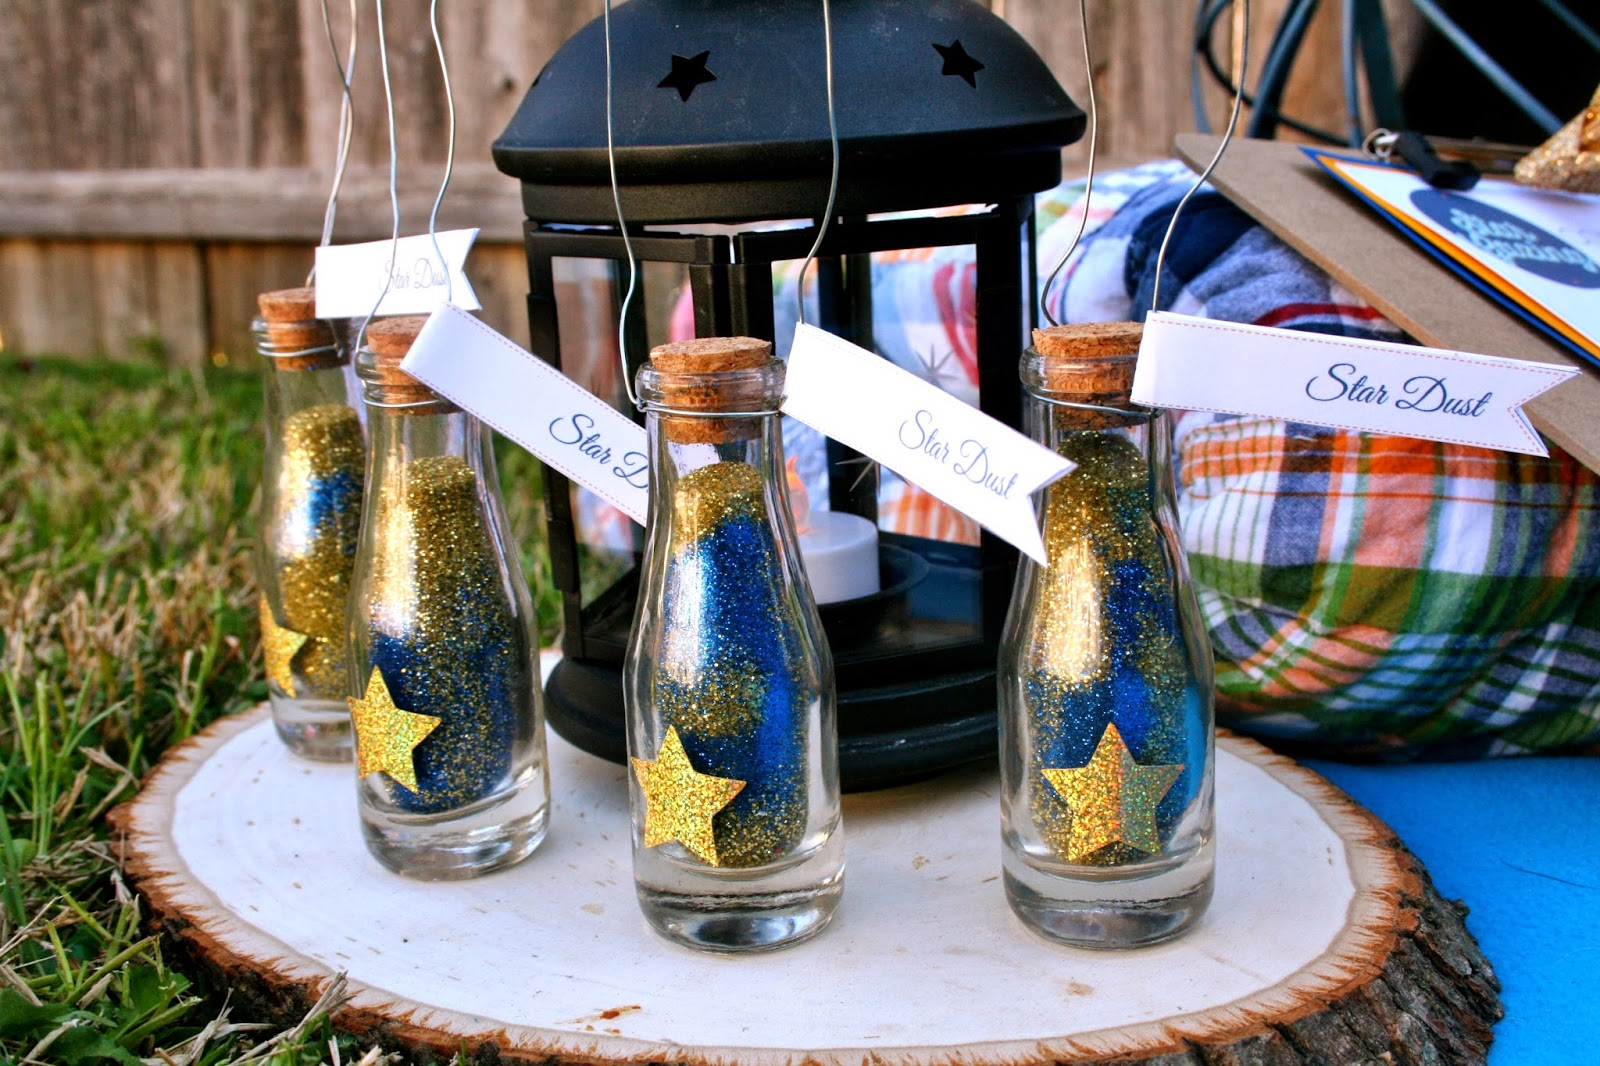 my life homemade: Backyard Star Gazing Party